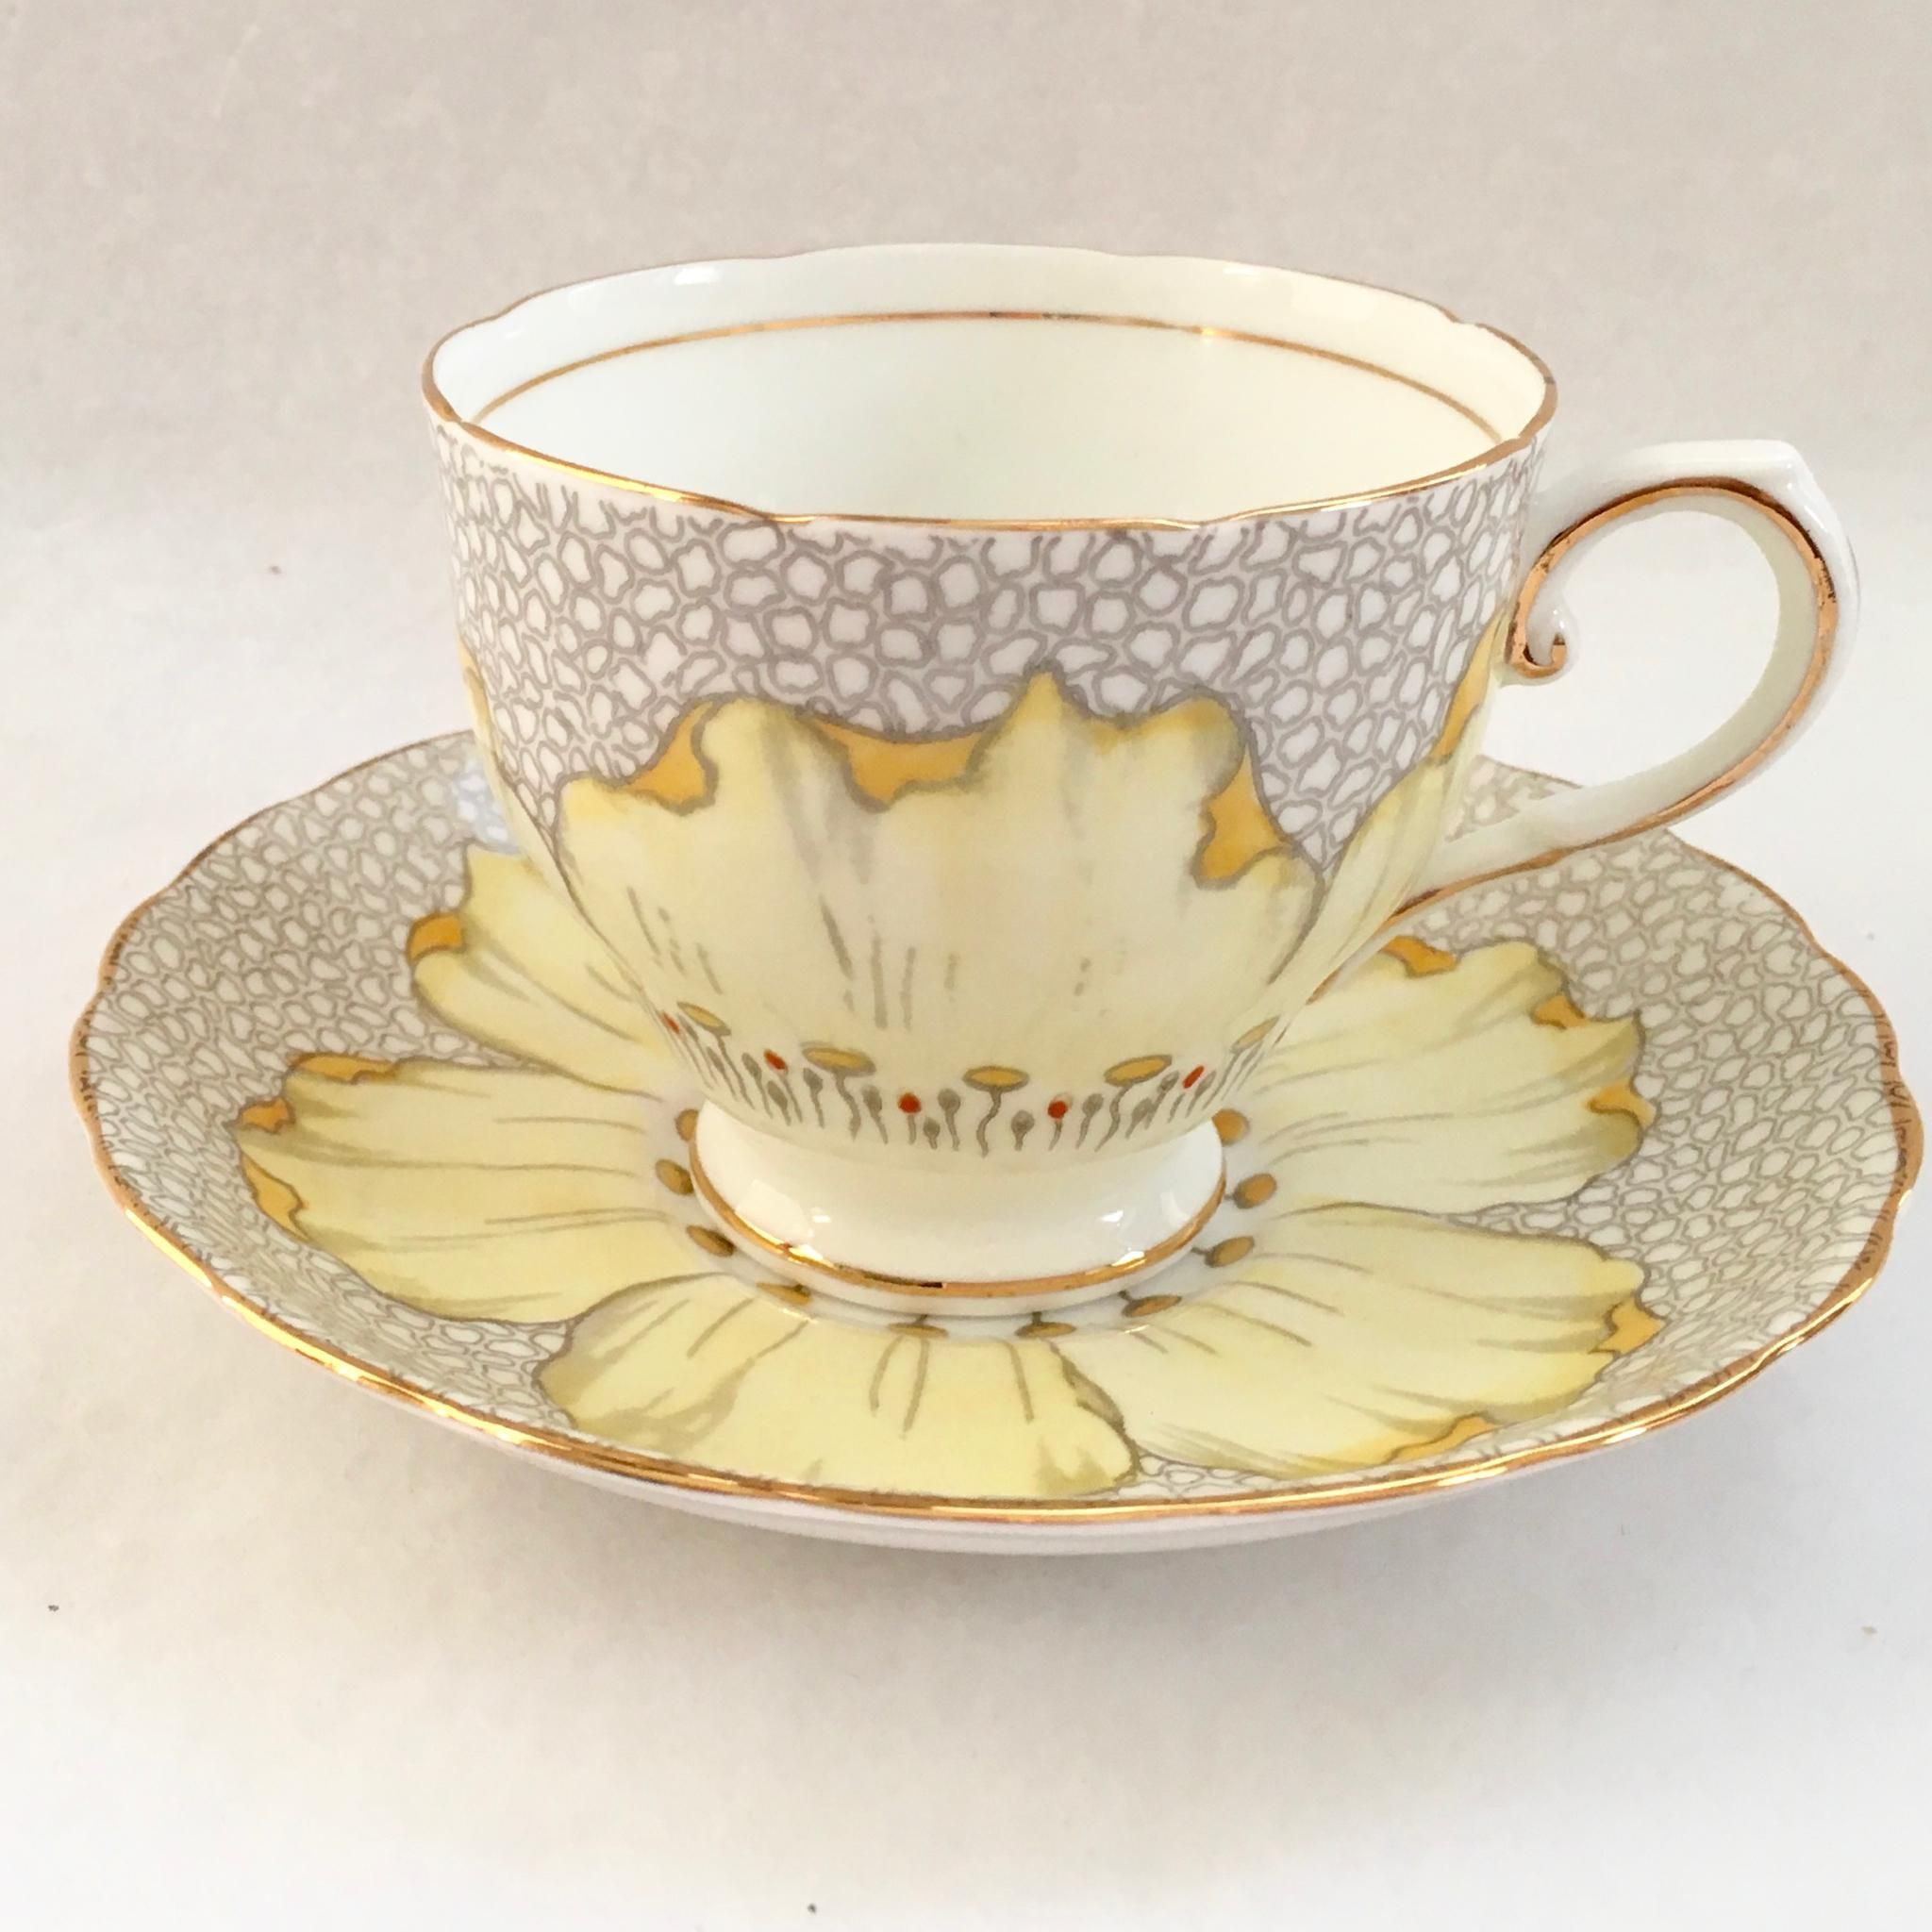 A Show Stopping Single Large Fully Open Yellow Flower Dominates The C5937 Design Of This Dainty Teacup And Sauc Tea Cups Bone China Tea Cups Tea Cups Vintage